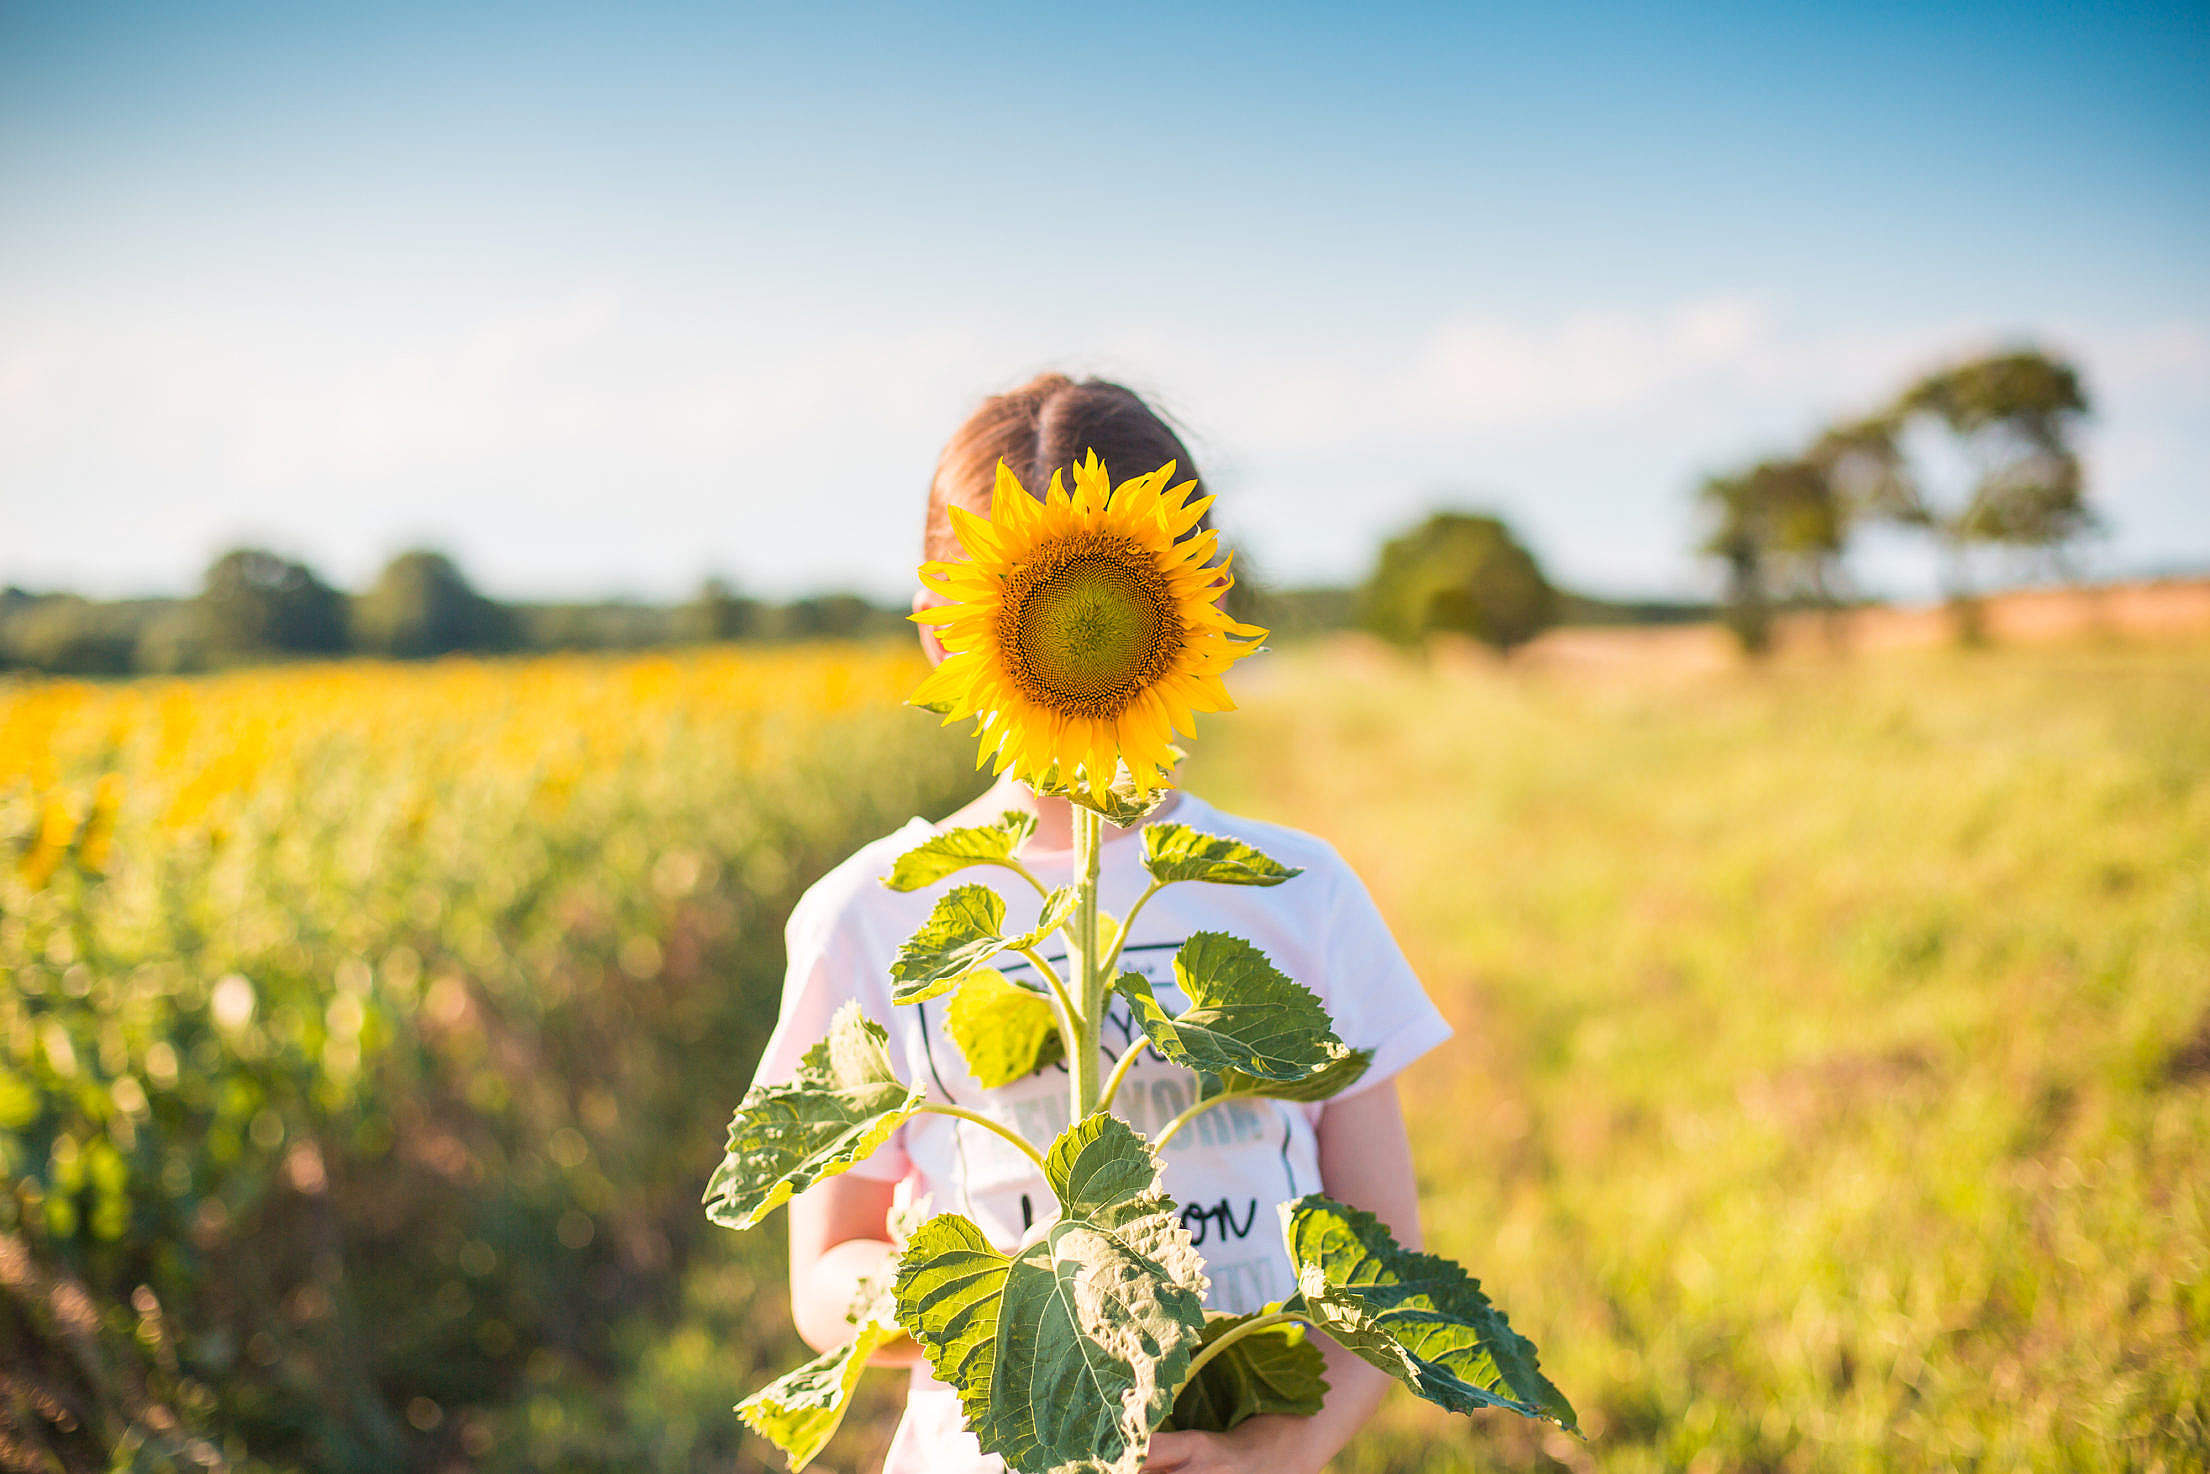 Little Girl with Sunflower in a Sunflower Field Free Stock Photo